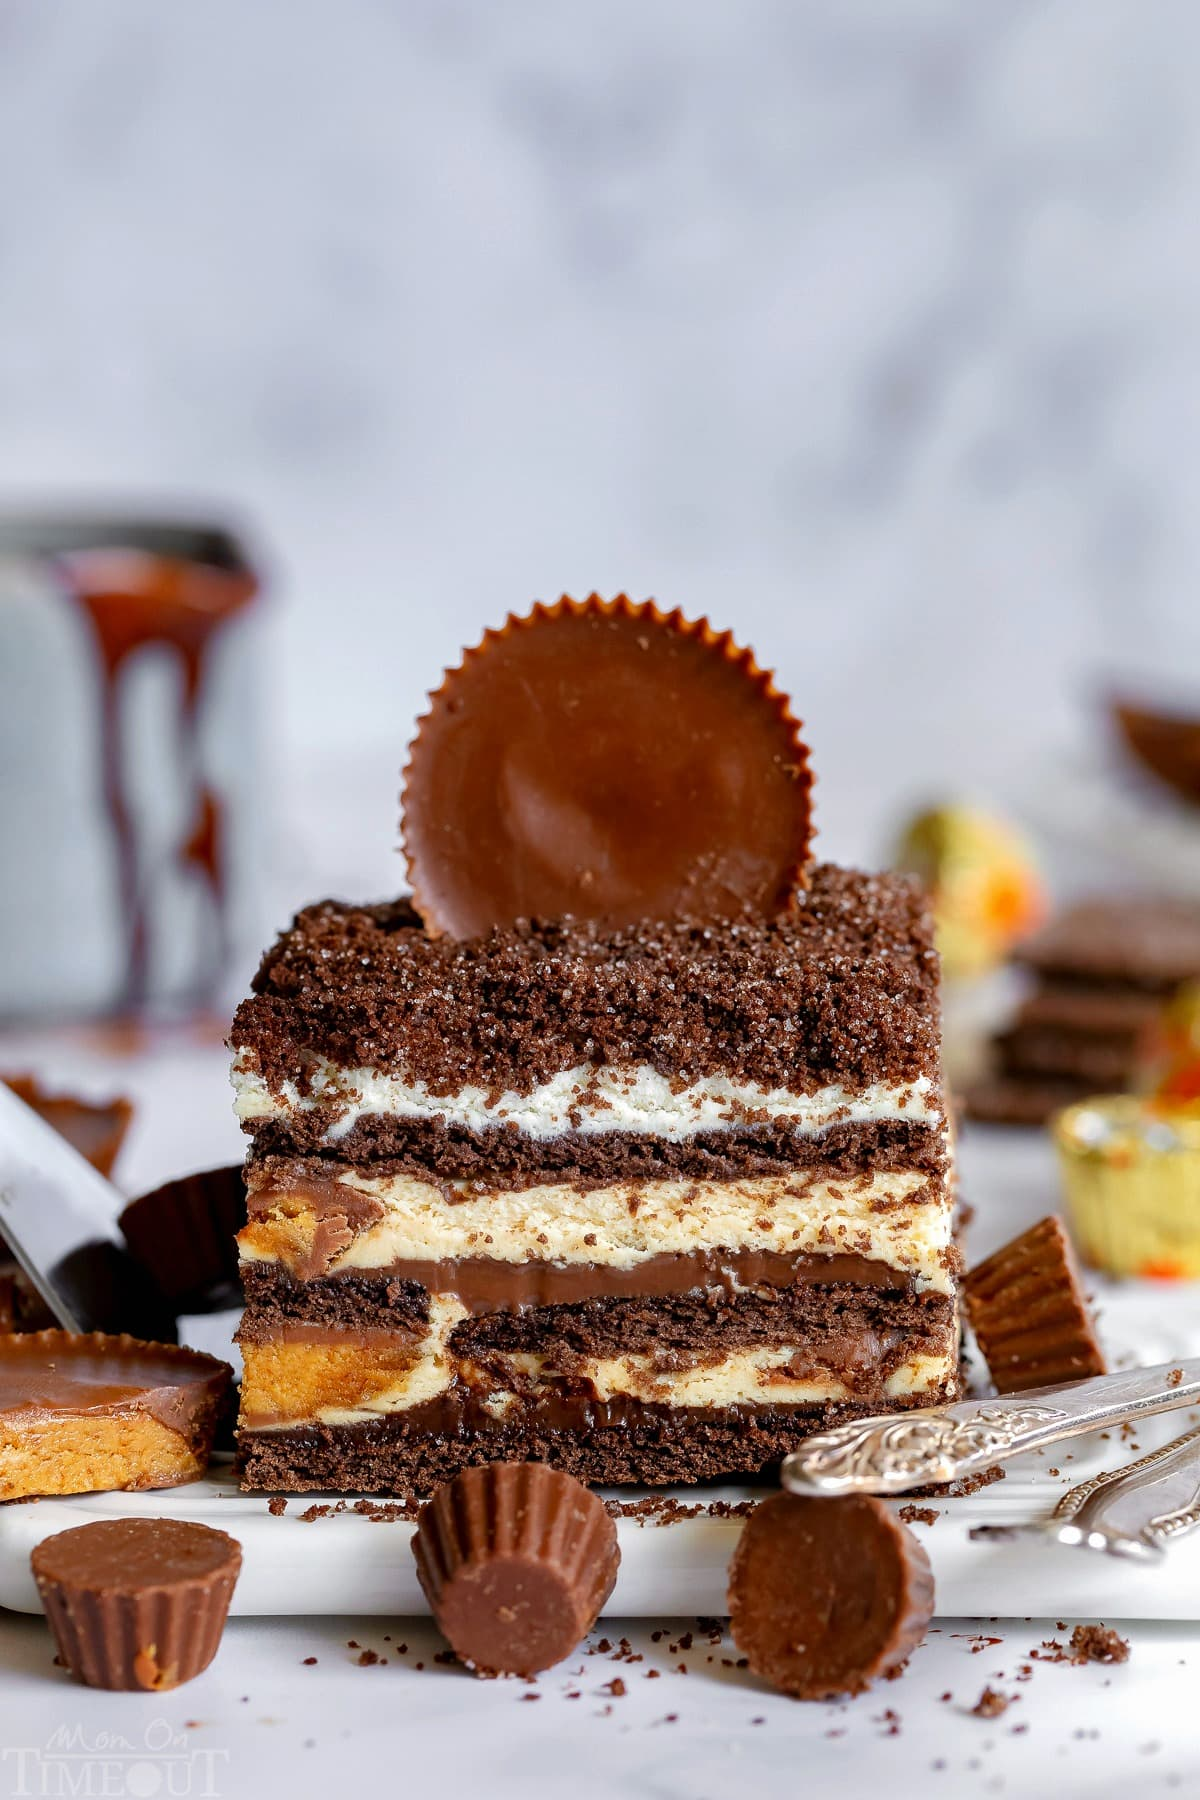 icebox-cake-peanut-butter-reeses-chocolate-graham-crackers-no-text